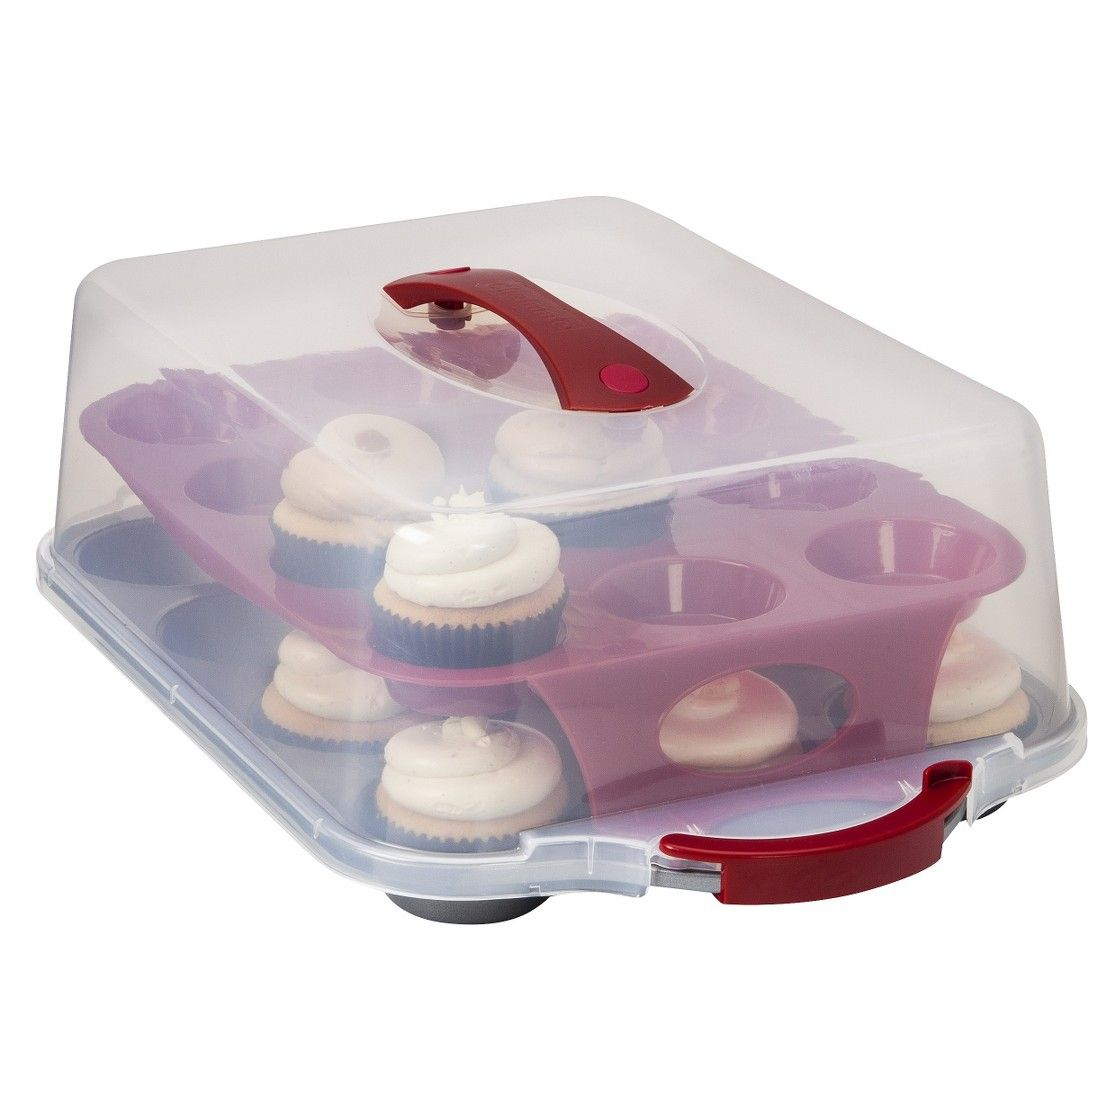 Cupcake Carrier Target I Must Buyohchefmate  24 Cavity Plastic Covered Cupcake Carrier